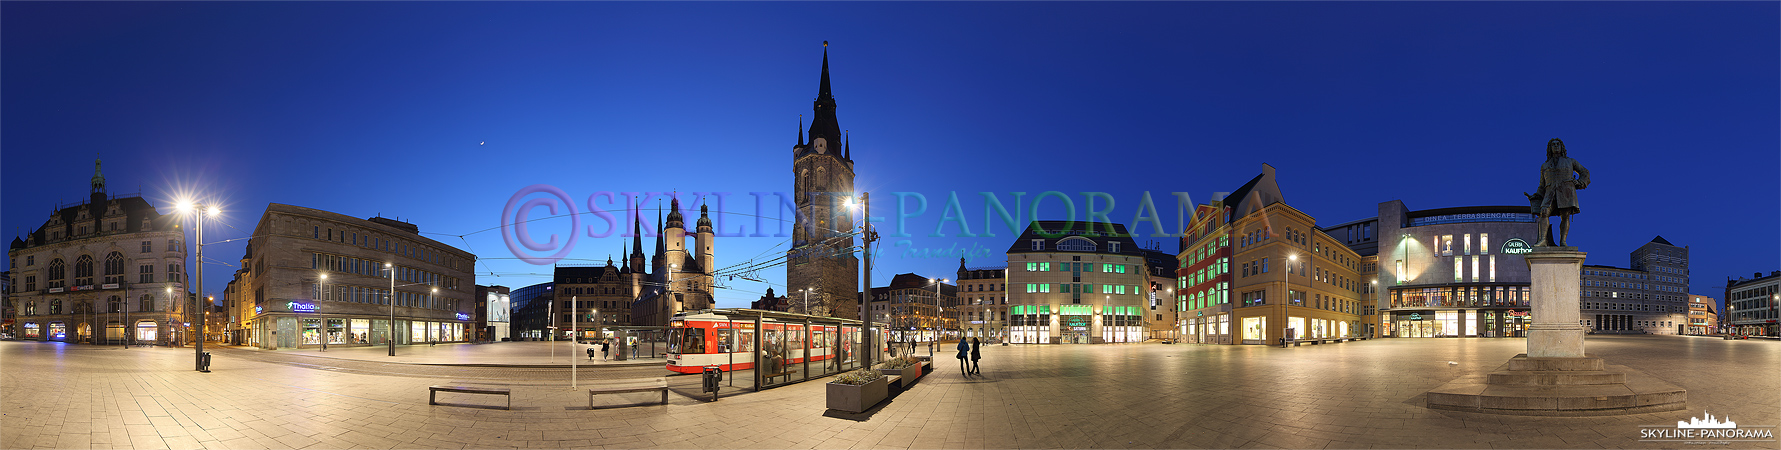 halle saale panorama am markt p 00754 skyline. Black Bedroom Furniture Sets. Home Design Ideas